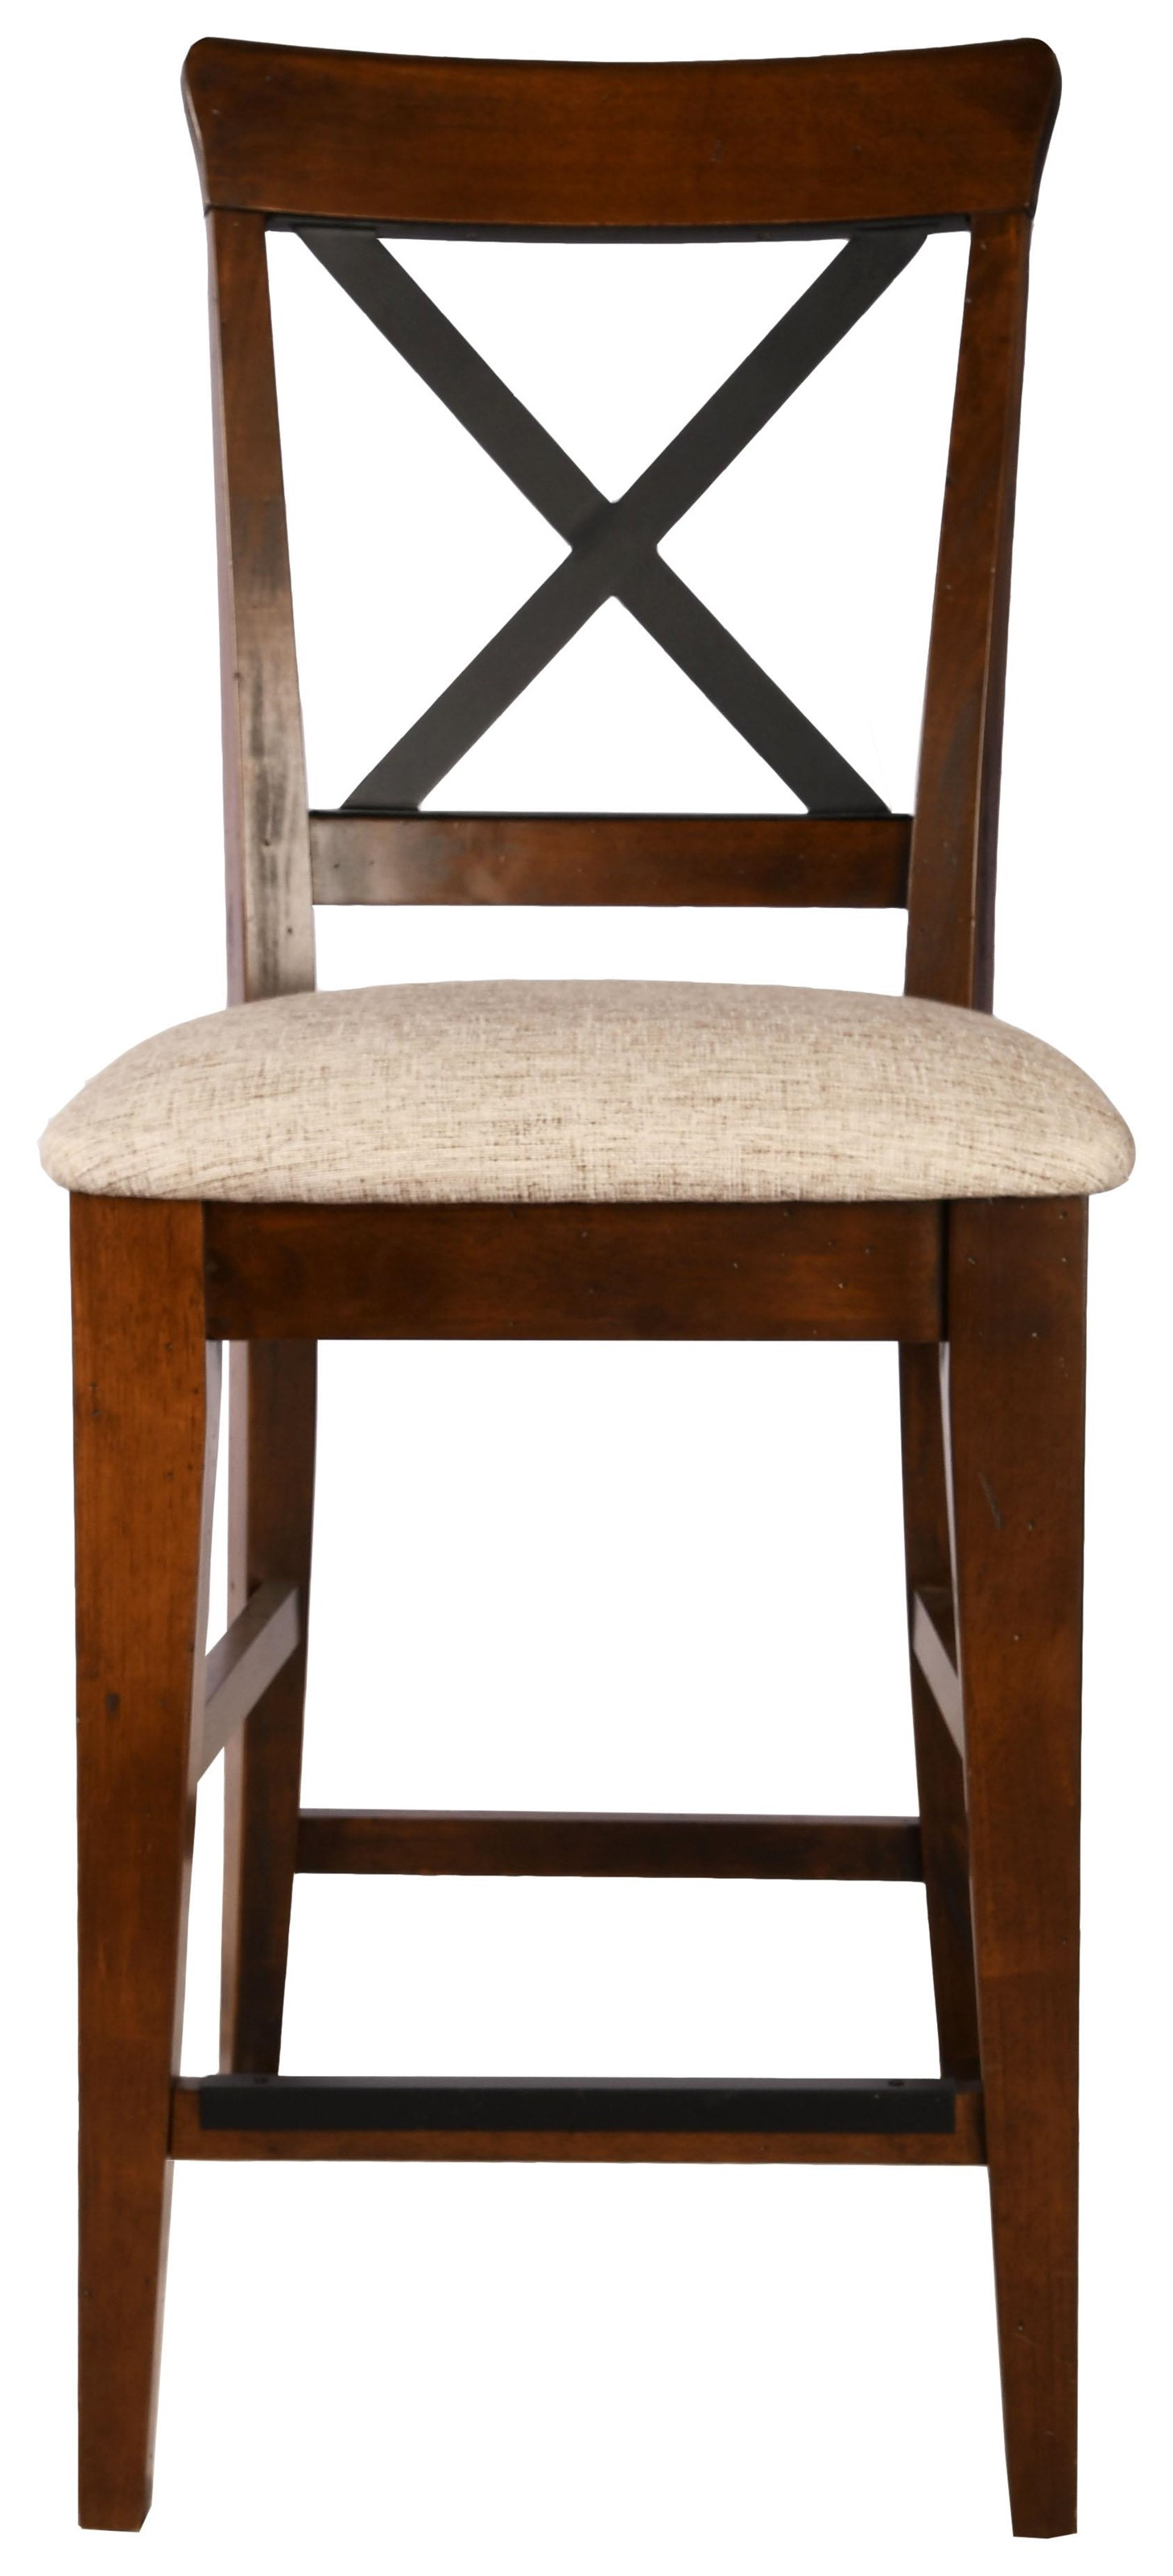 East Side Customizable X-Back Stool by Canadel at Bennett's Furniture and Mattresses